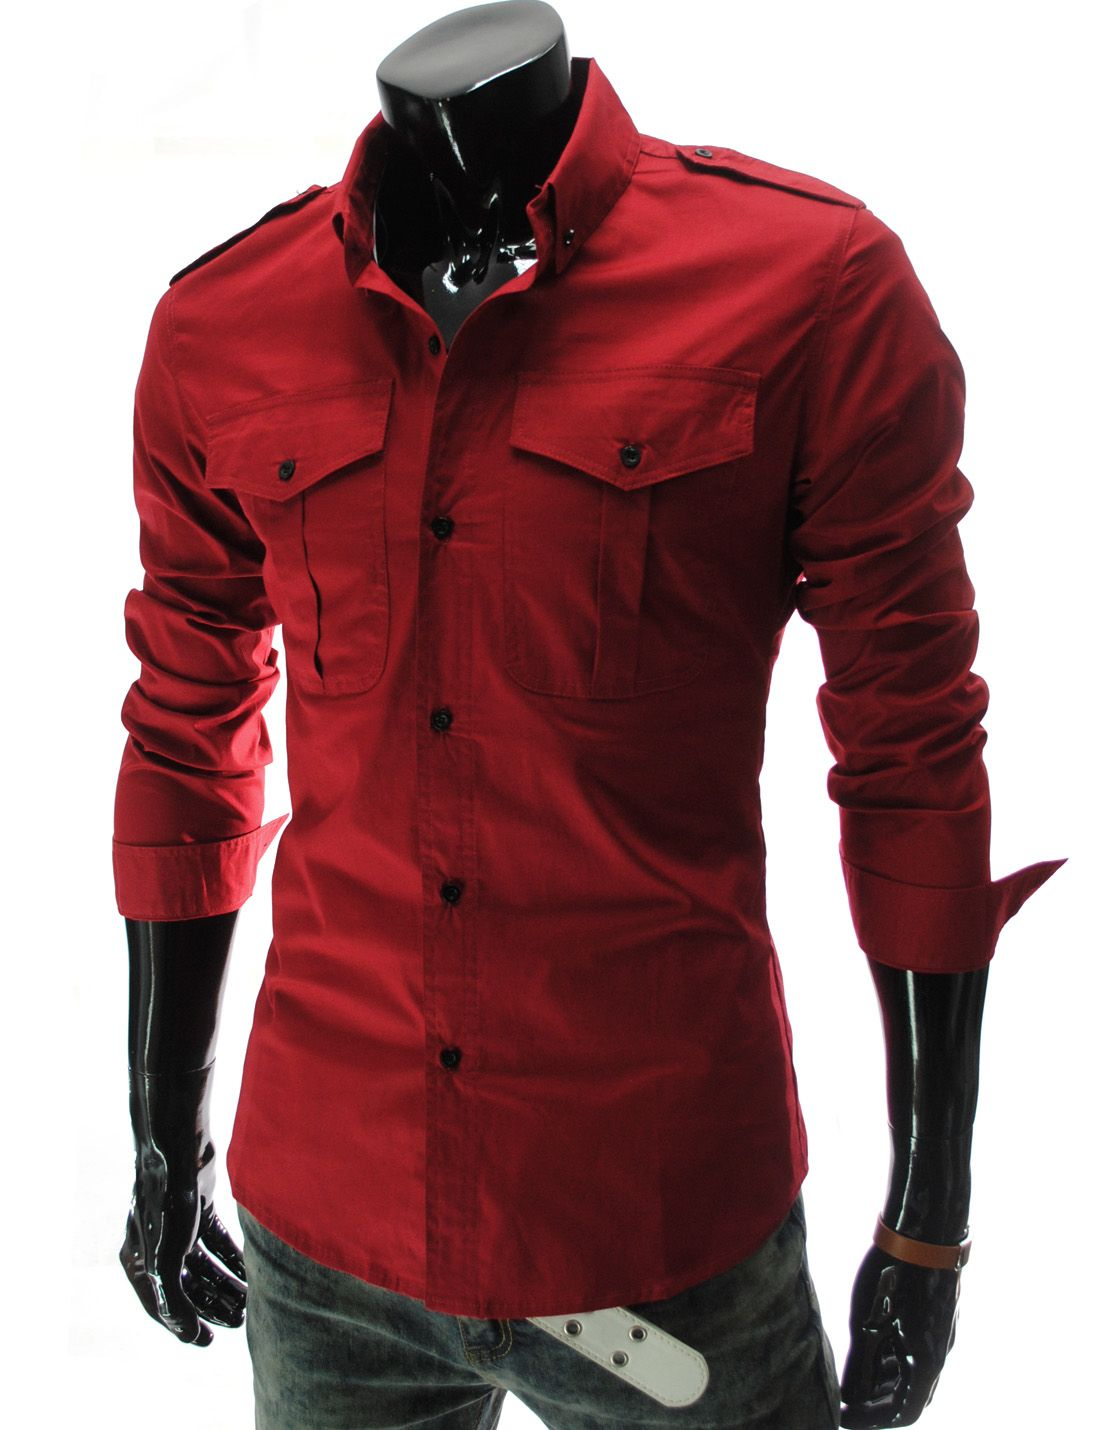 217accb808 (N316-REDWINE) Mens Casual Slim Fit Strap Big Pocket Shirts RED WINE  22.49